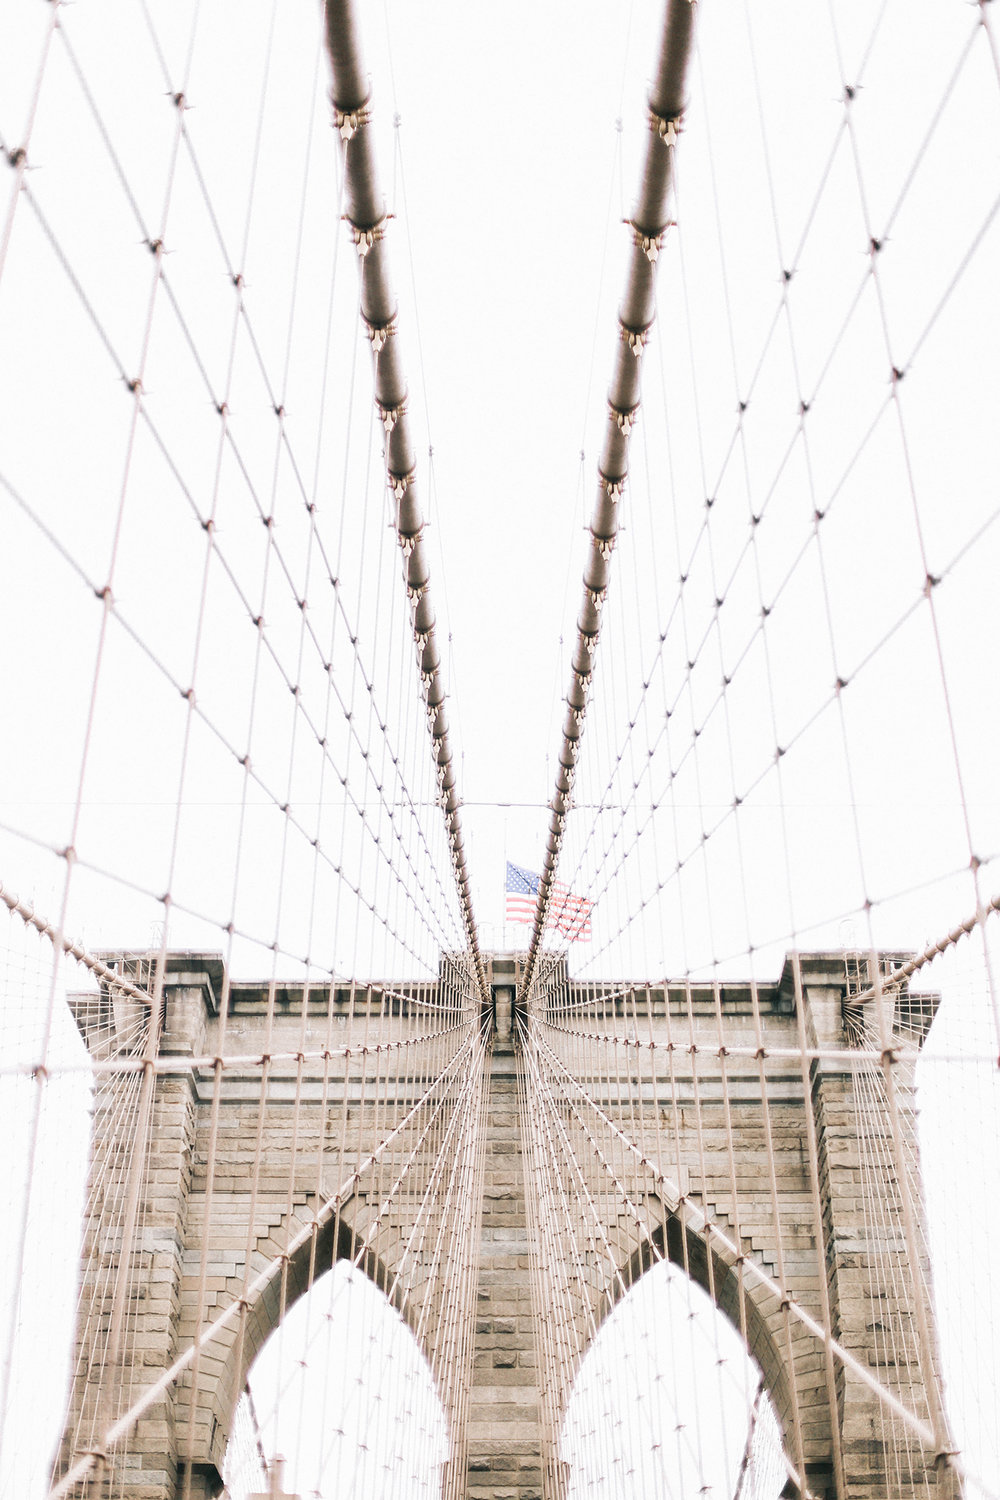 Brooklyn Bridge, New York | trudygeorgina.com